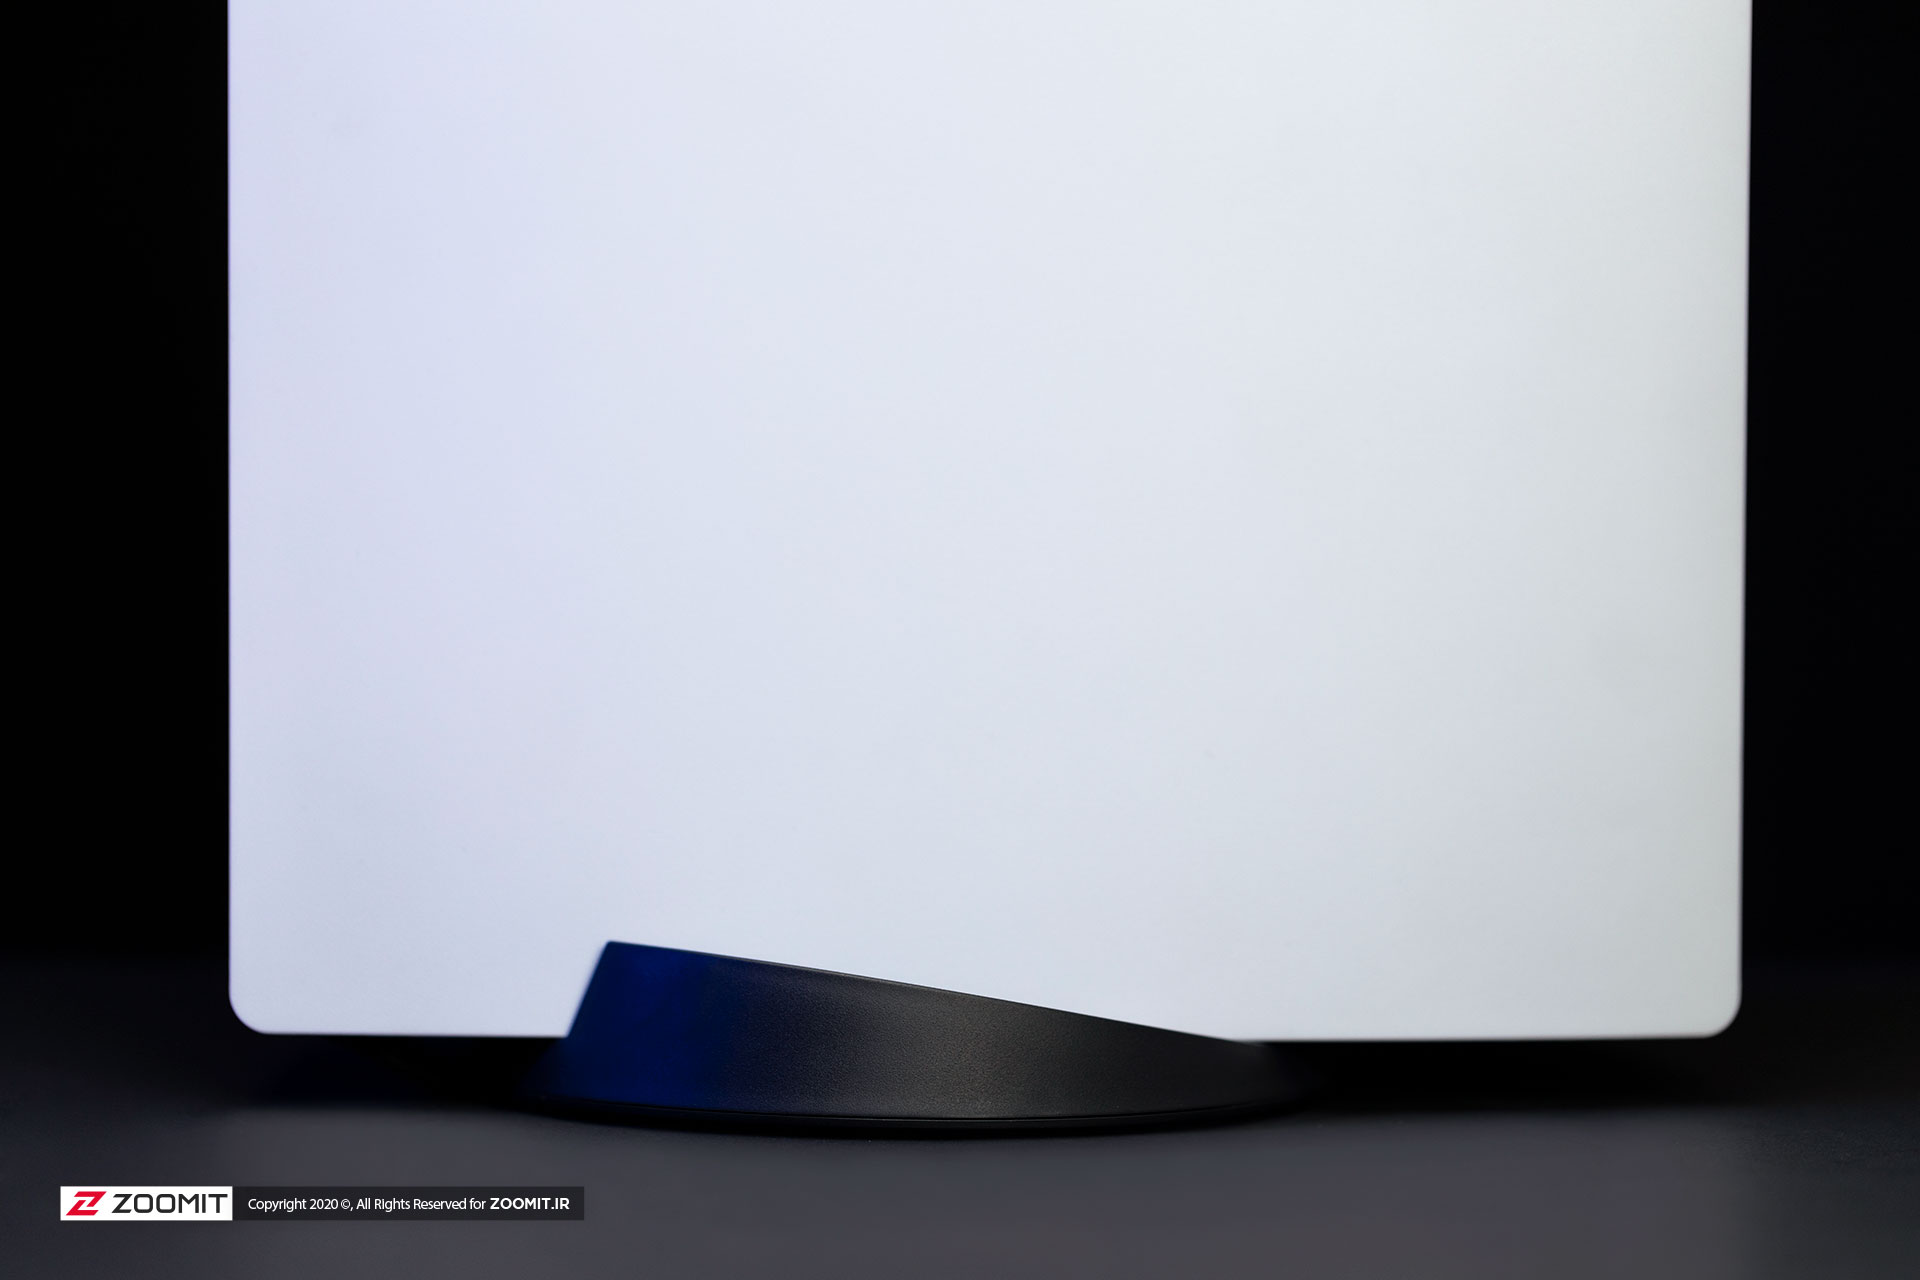 PlayStation 5 PS5 stand